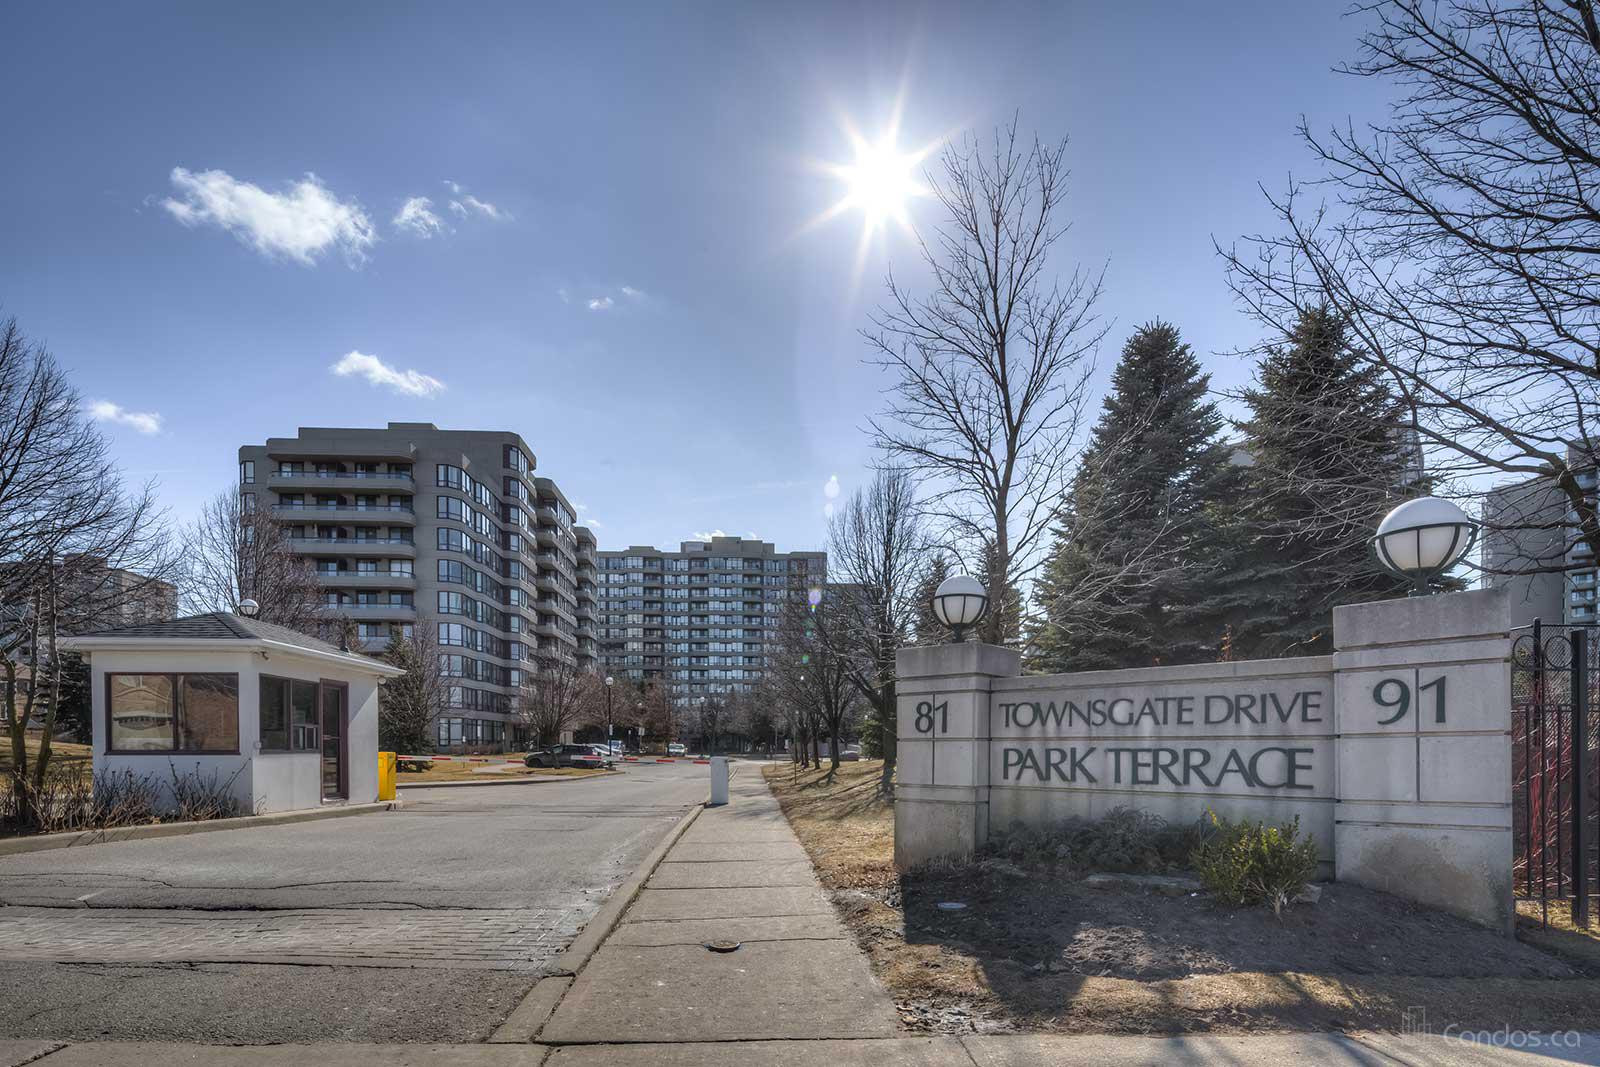 Park Terrace Ⅱ at 91 Townsgate Dr, Vaughan 1